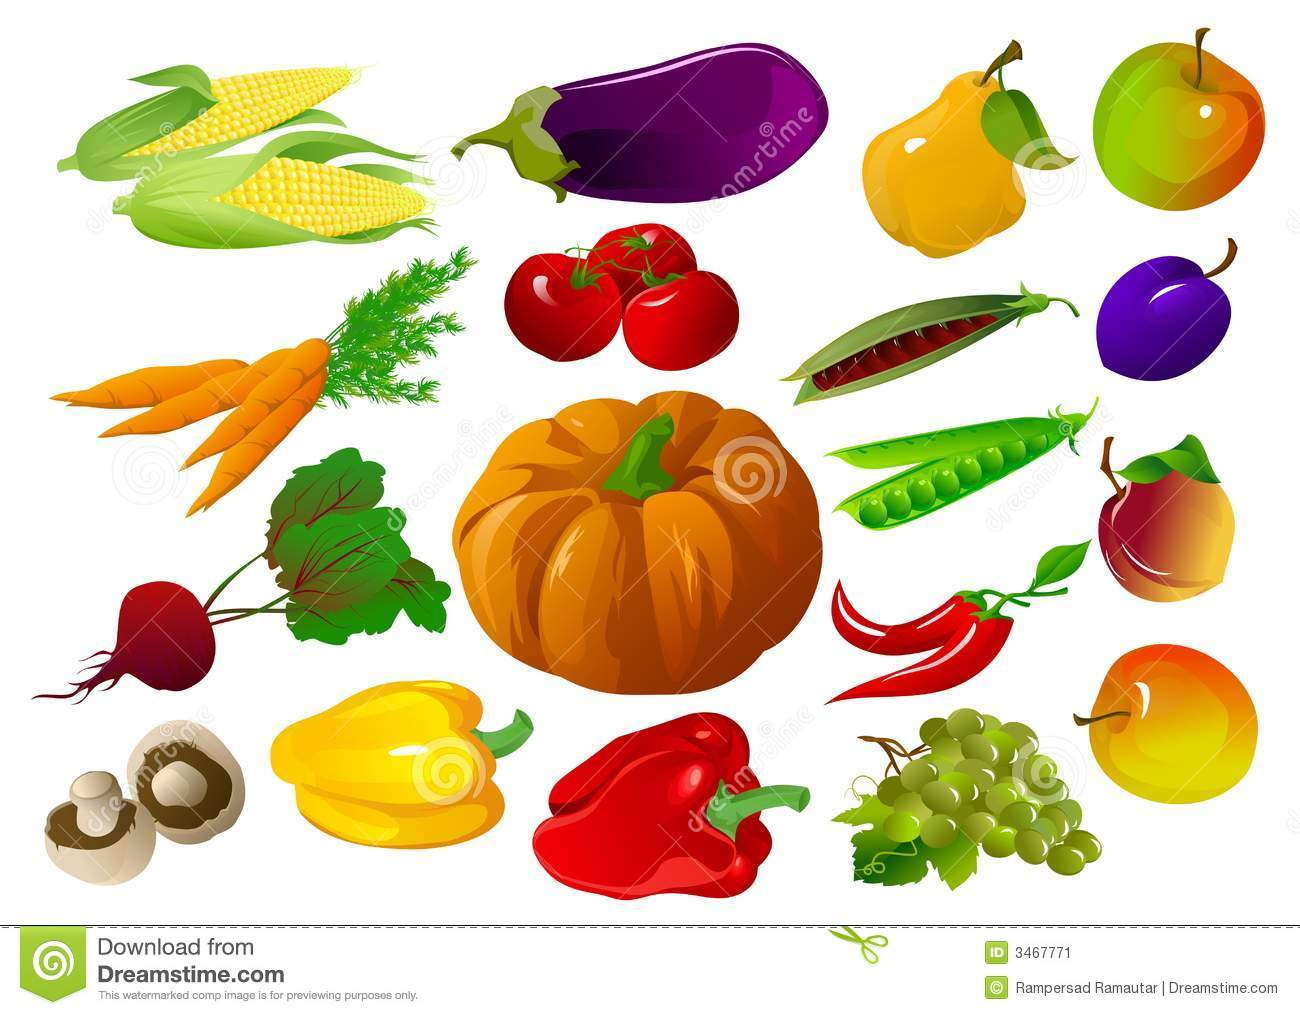 Vegetables Stock Illustrations Vectors C-Vegetables Stock Illustrations Vectors Clipart u2013 26164 Stock Image source  from this-18